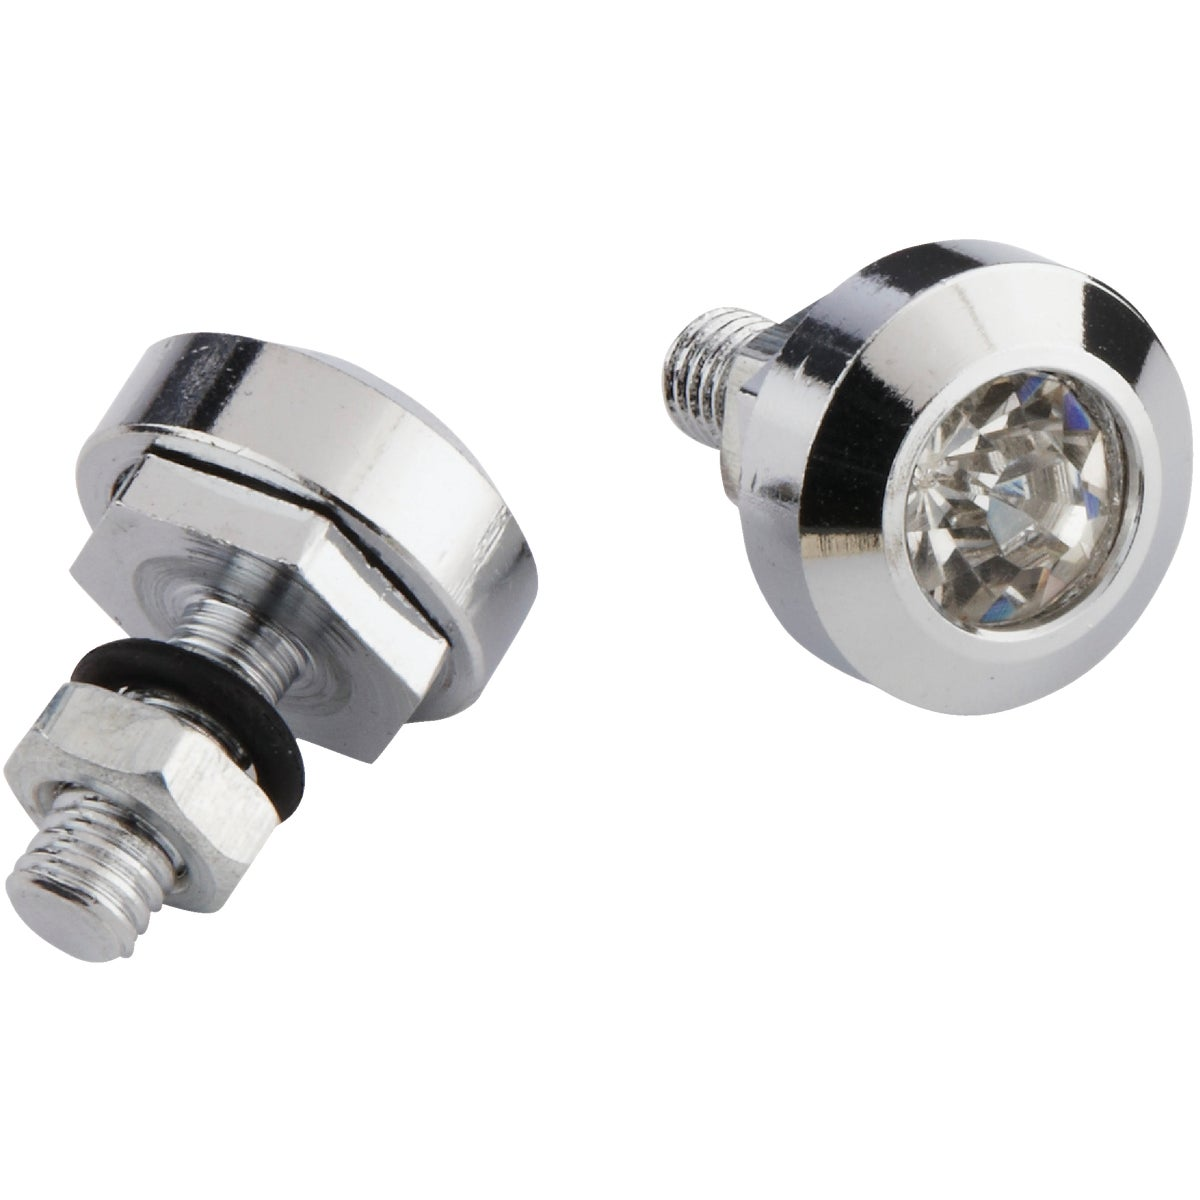 DIAMOND LICENSE FASTENER